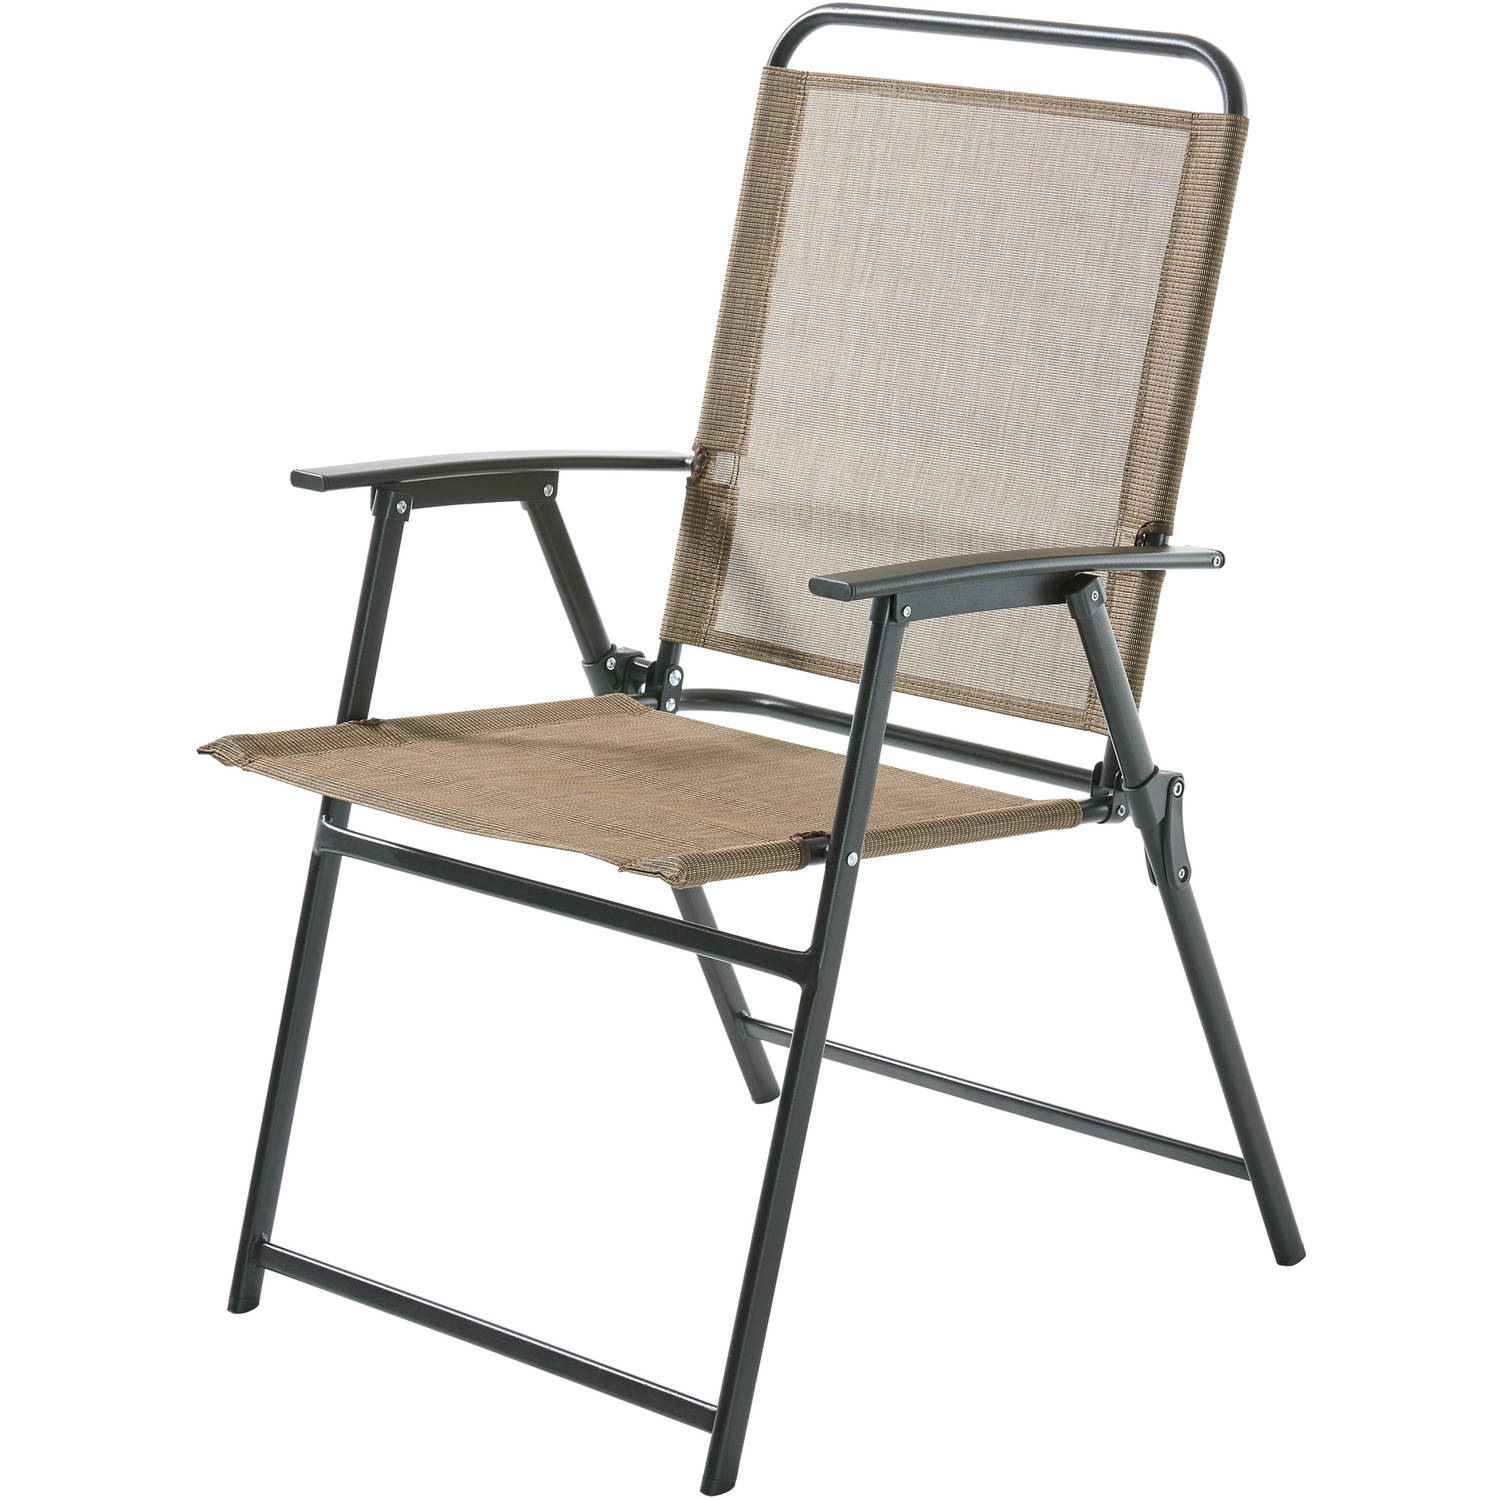 folding armless camping chairs poang chair india lightweight